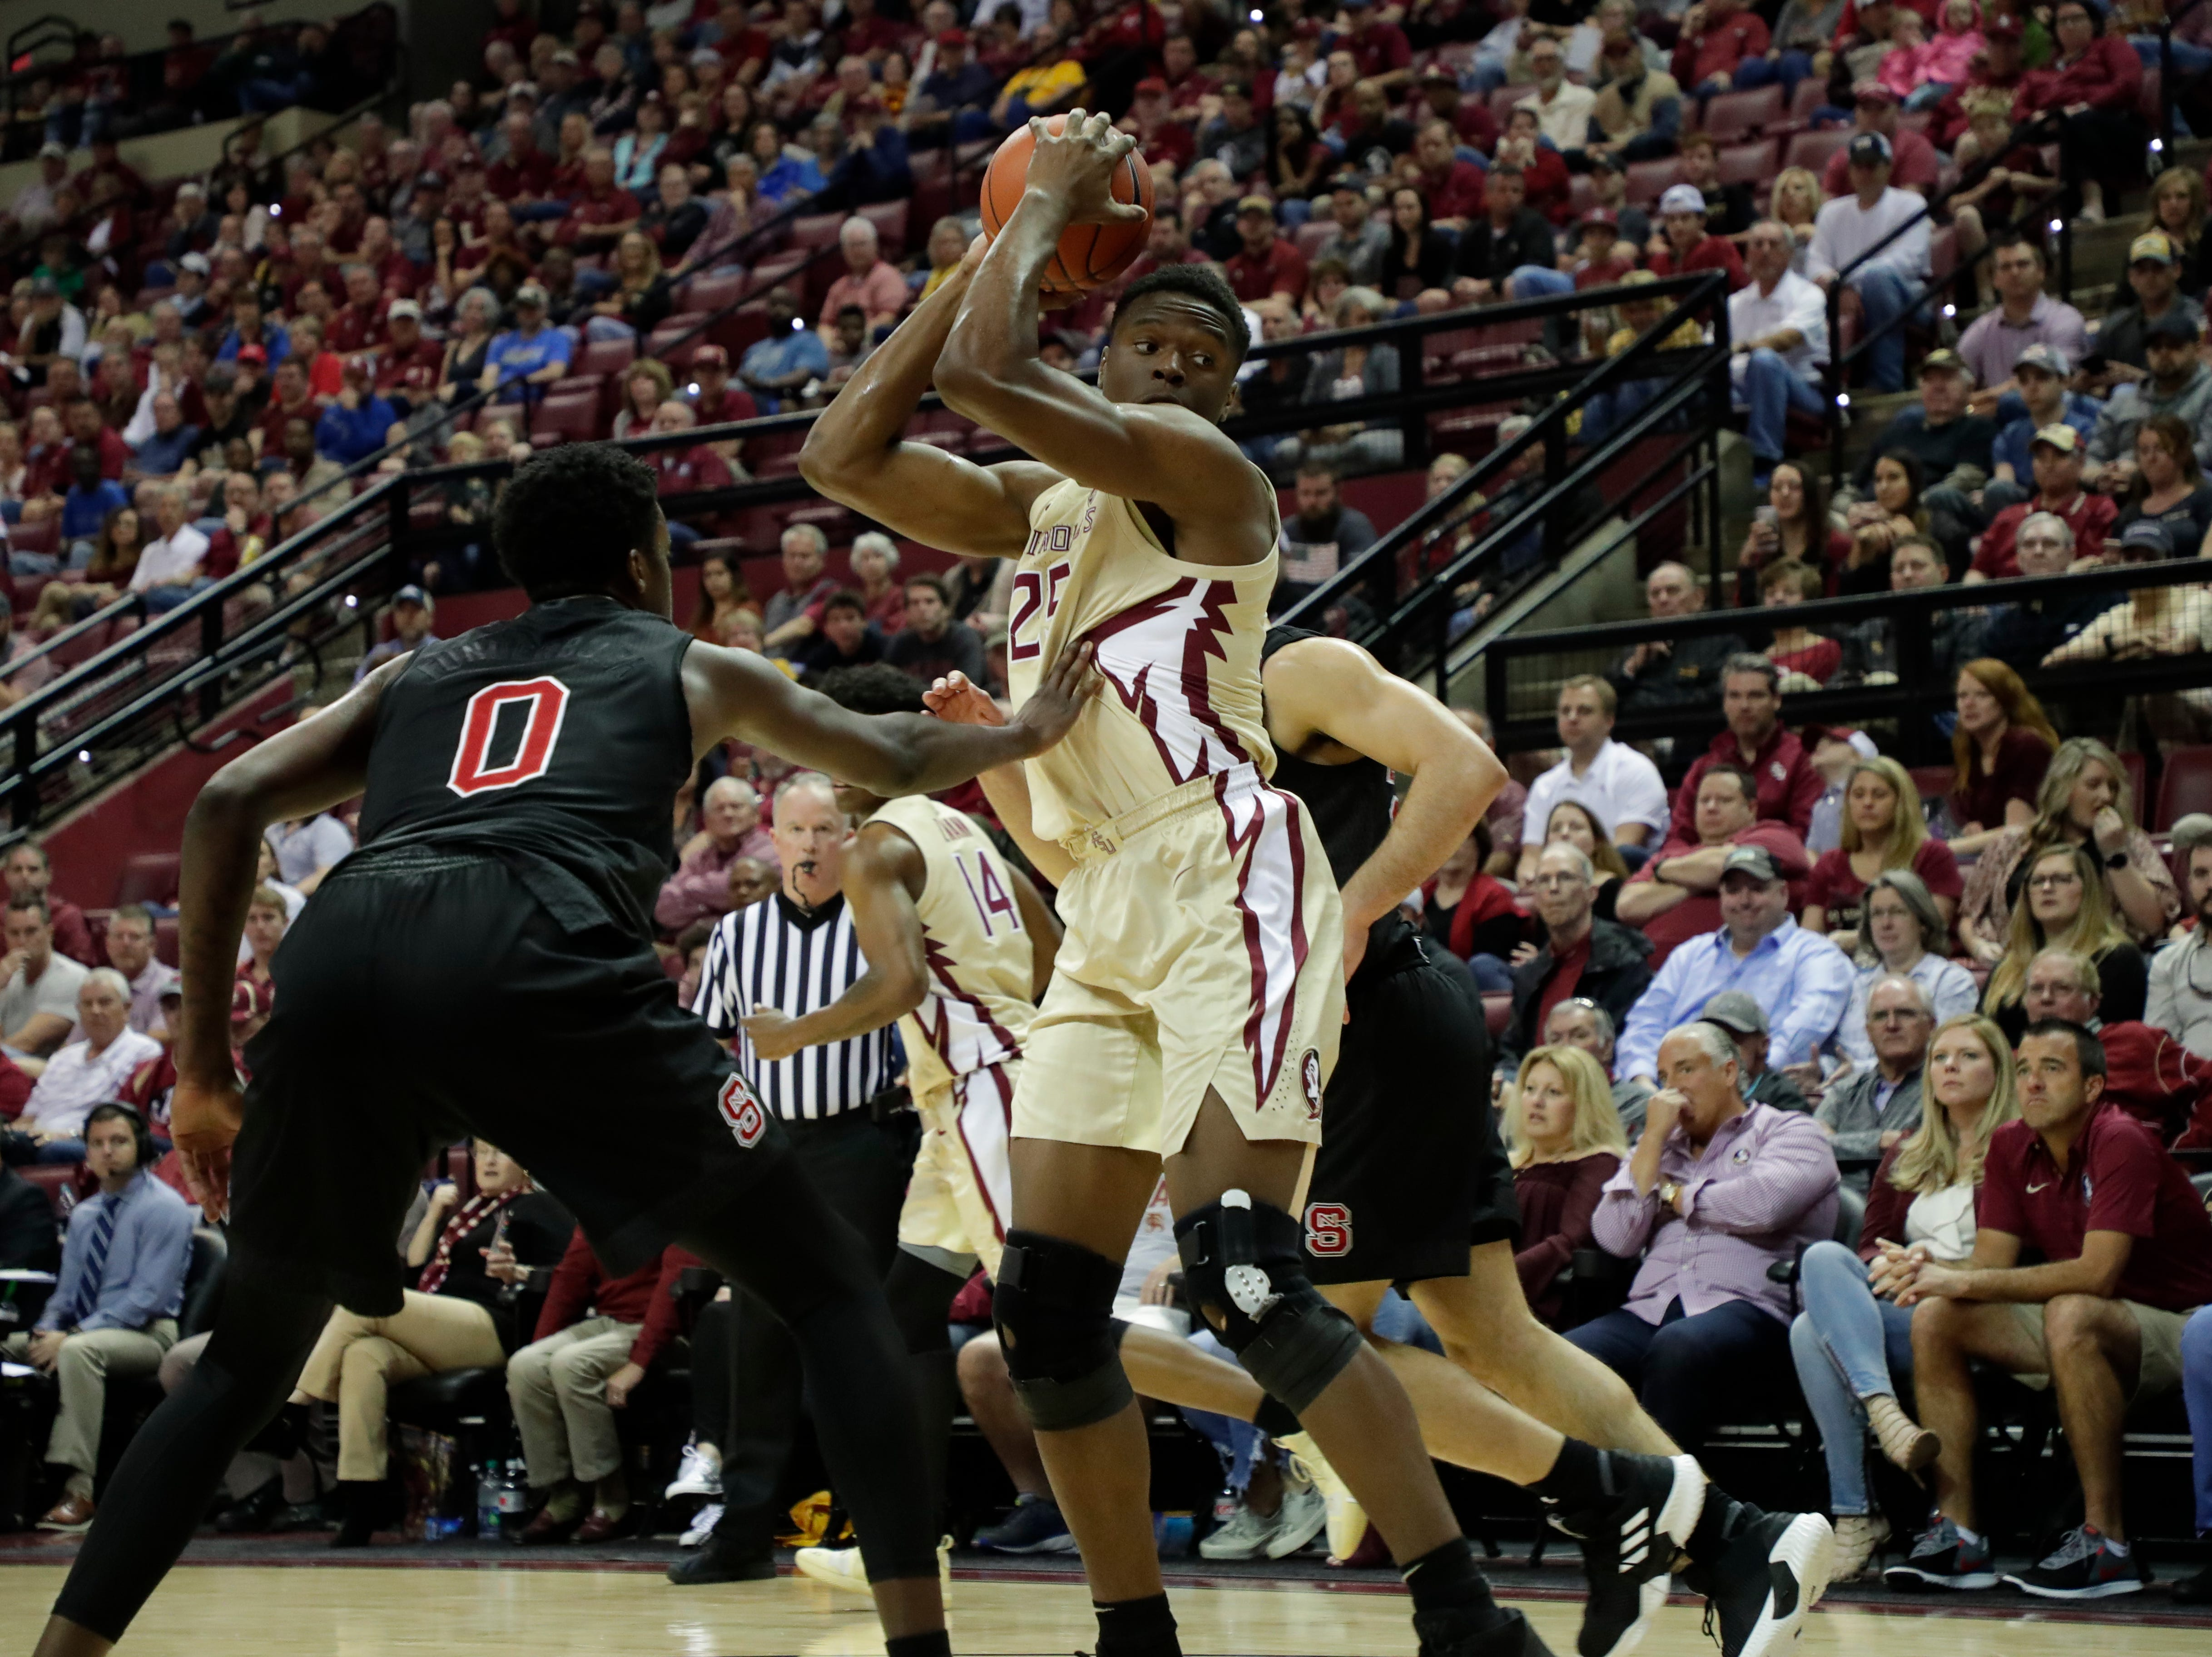 Florida State Seminoles forward Mfiondu Kabengele (25) looks to pass. The Florida State Seminoles host the NC State Wolfpack at the Tucker Civic Center Saturday, March 2, 2019.